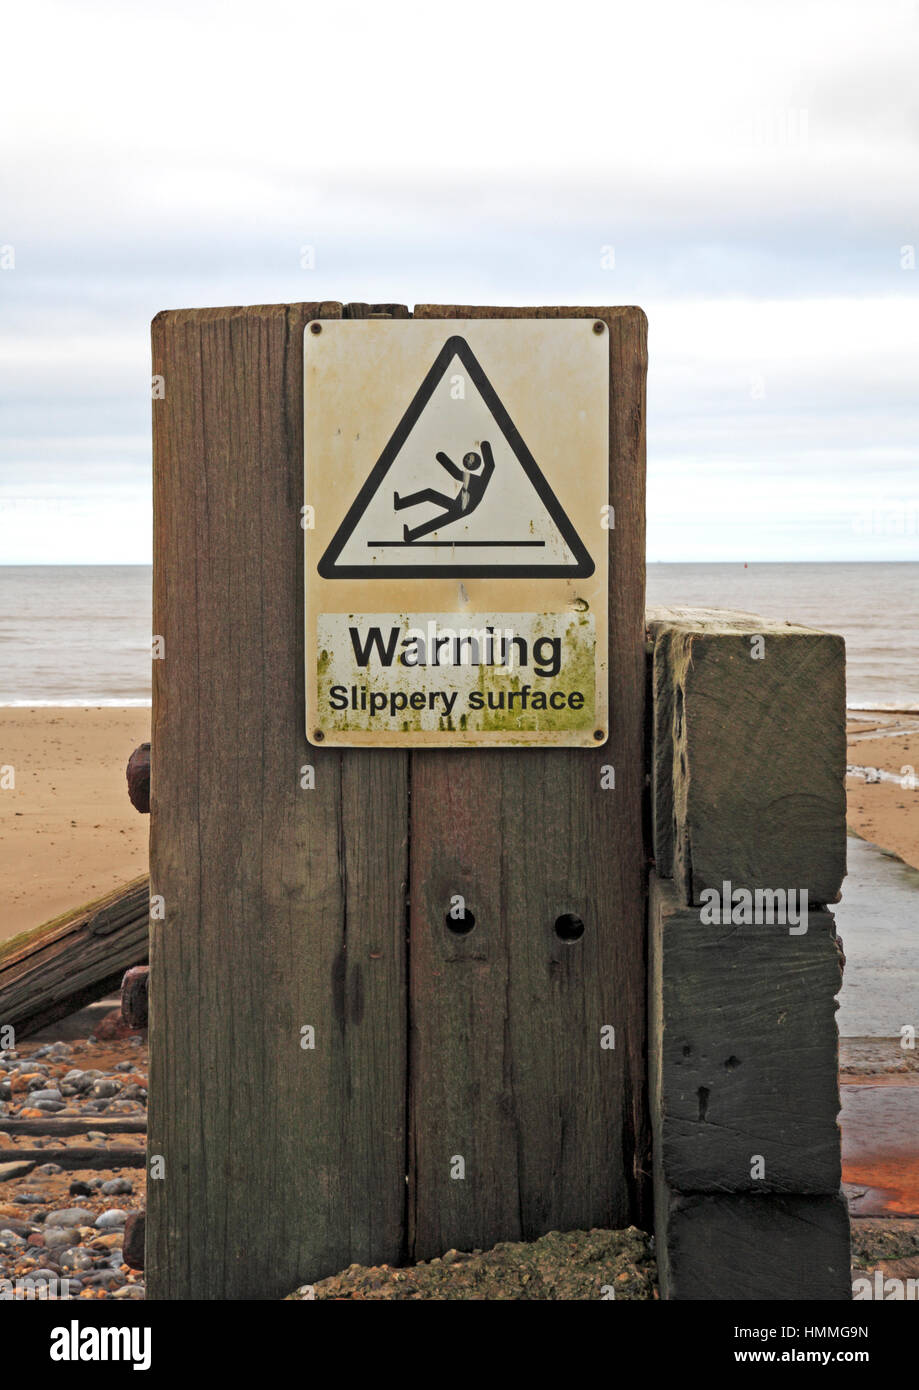 A slippery surface warning sign on the beach at Mundesley-on-Sea, Norfolk, England, United Kingdom. - Stock Image